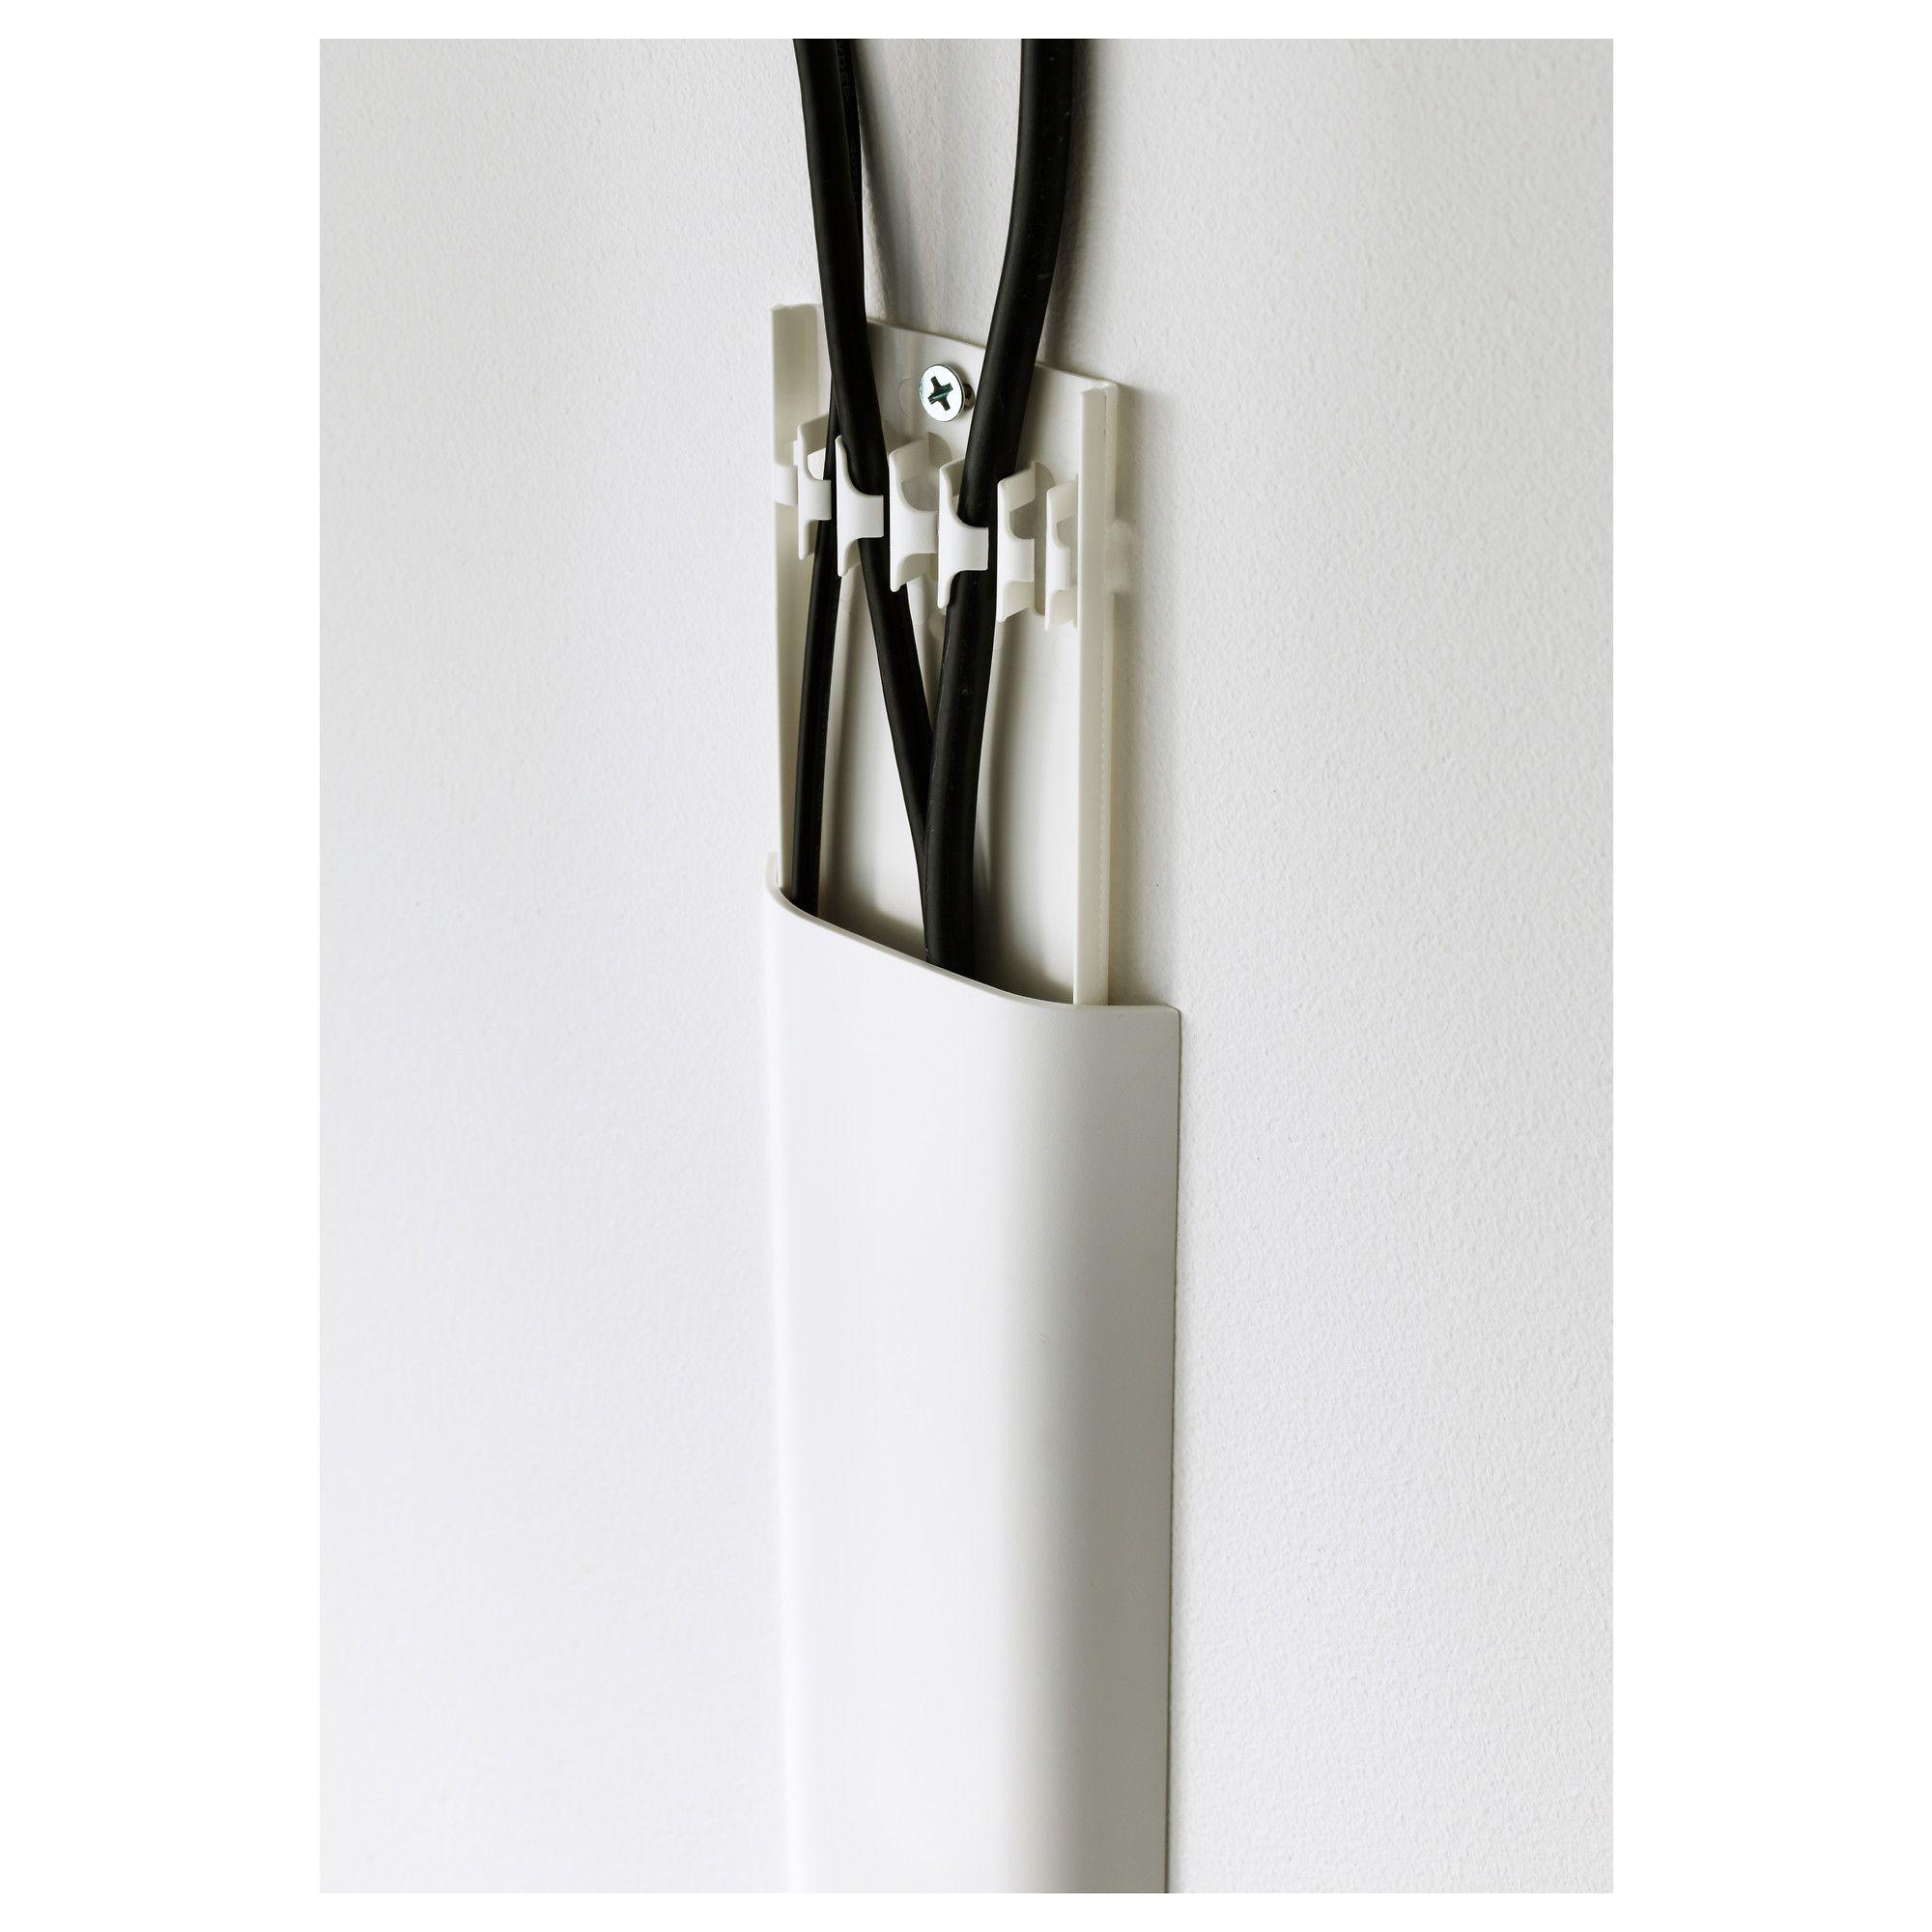 IKEA - UPPLEVA Cord cover strip white | Organizations, Wall ideas ...